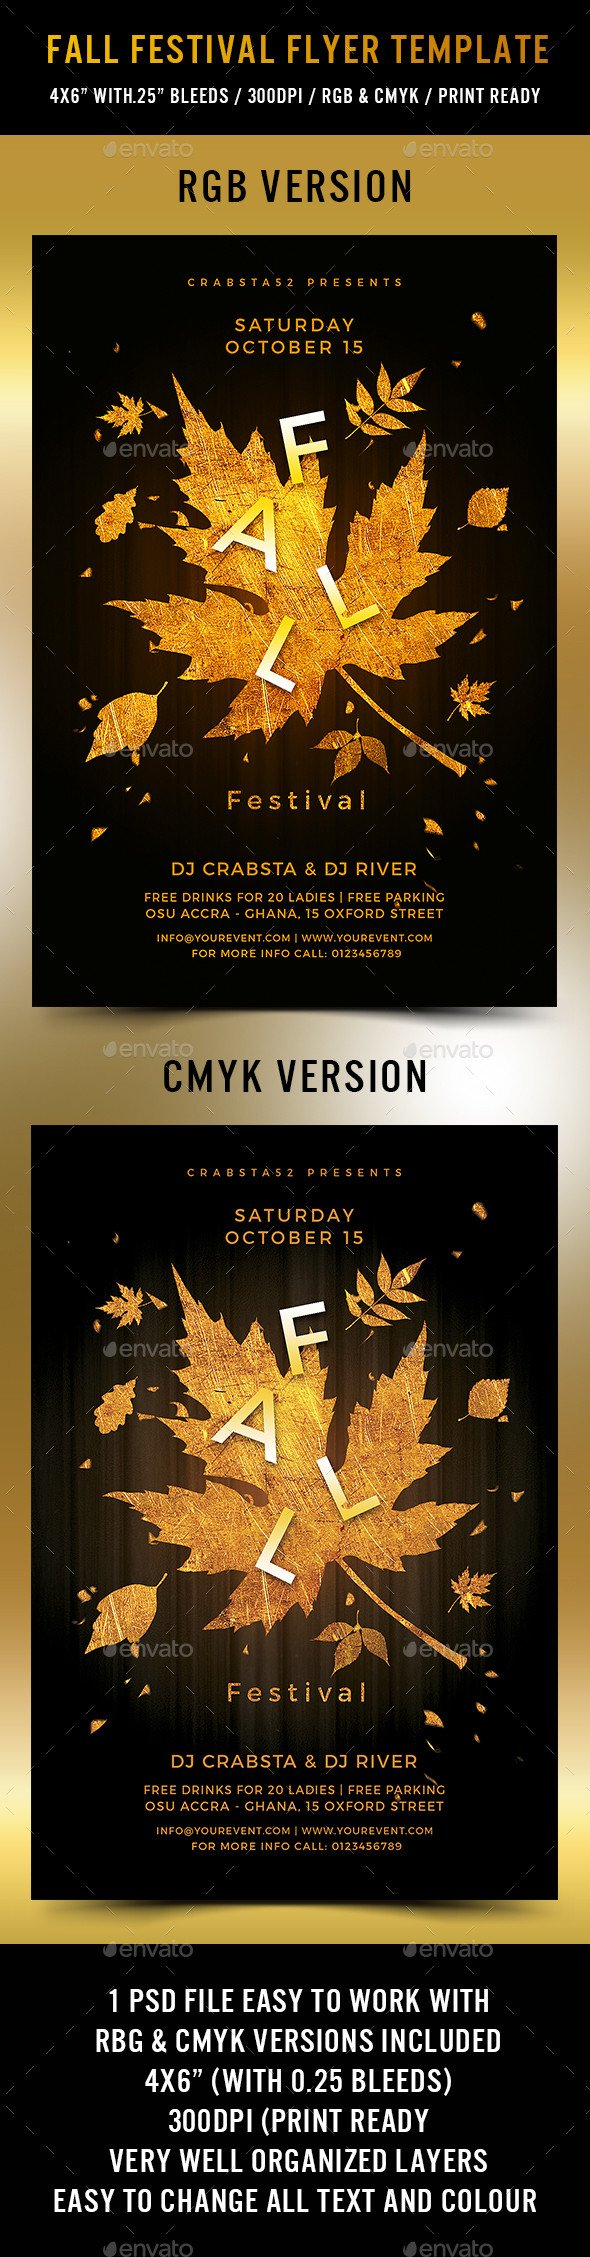 Fall Festival Flyer Templates Fall Festival Flyer Template by Crabsta52